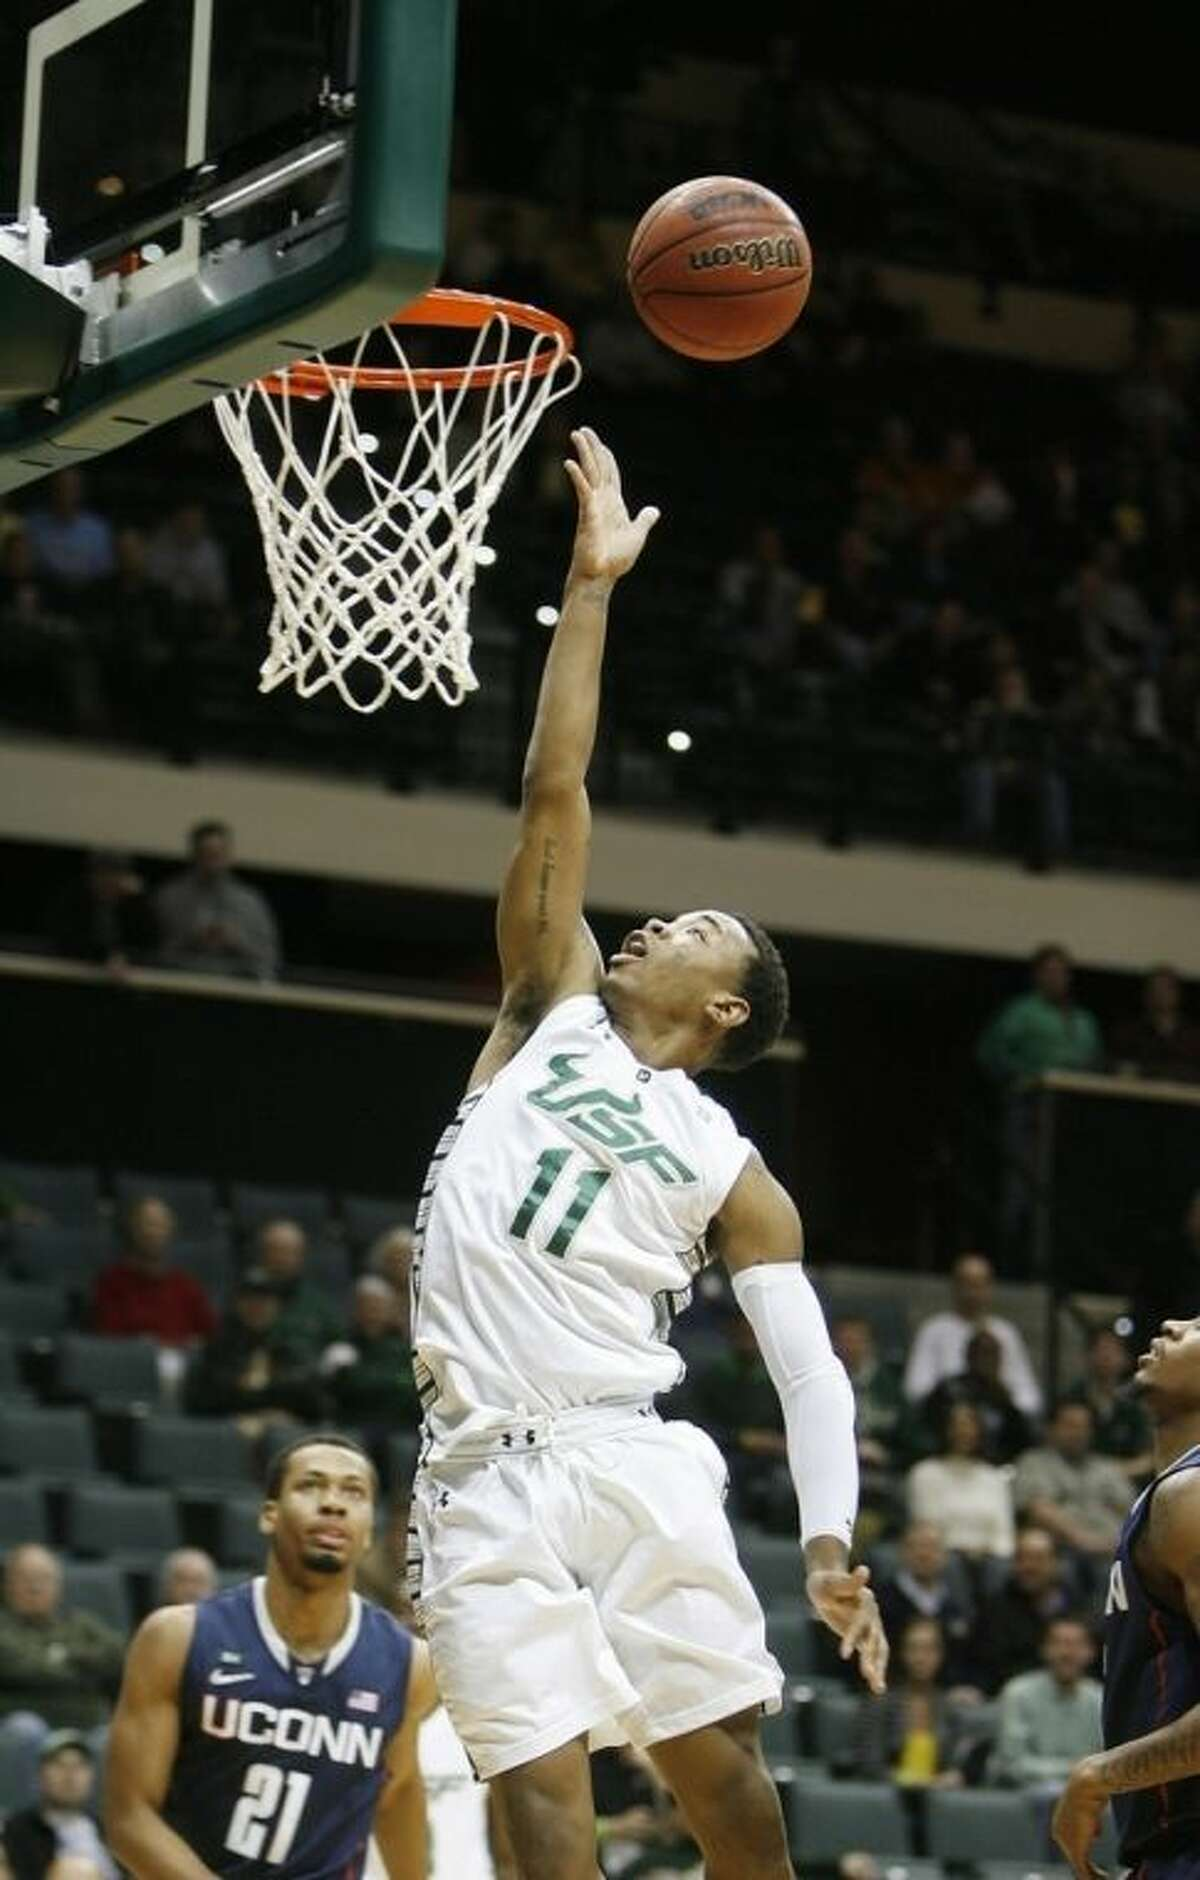 South Florida's Anthony Collins (11) drives the lane against Connecticut during the first half of an NCAA college basketball game Wednesday, March 6, 2013, in Tampa, Fla. (AP Photo/The Tampa Bay Times, Octavio Jones) TAMPA, CITRUS COUNTY, PORT CHARLOTTE, AND BROOKSVILLE HERNANDO TODAY OUT USA TODAY OUT